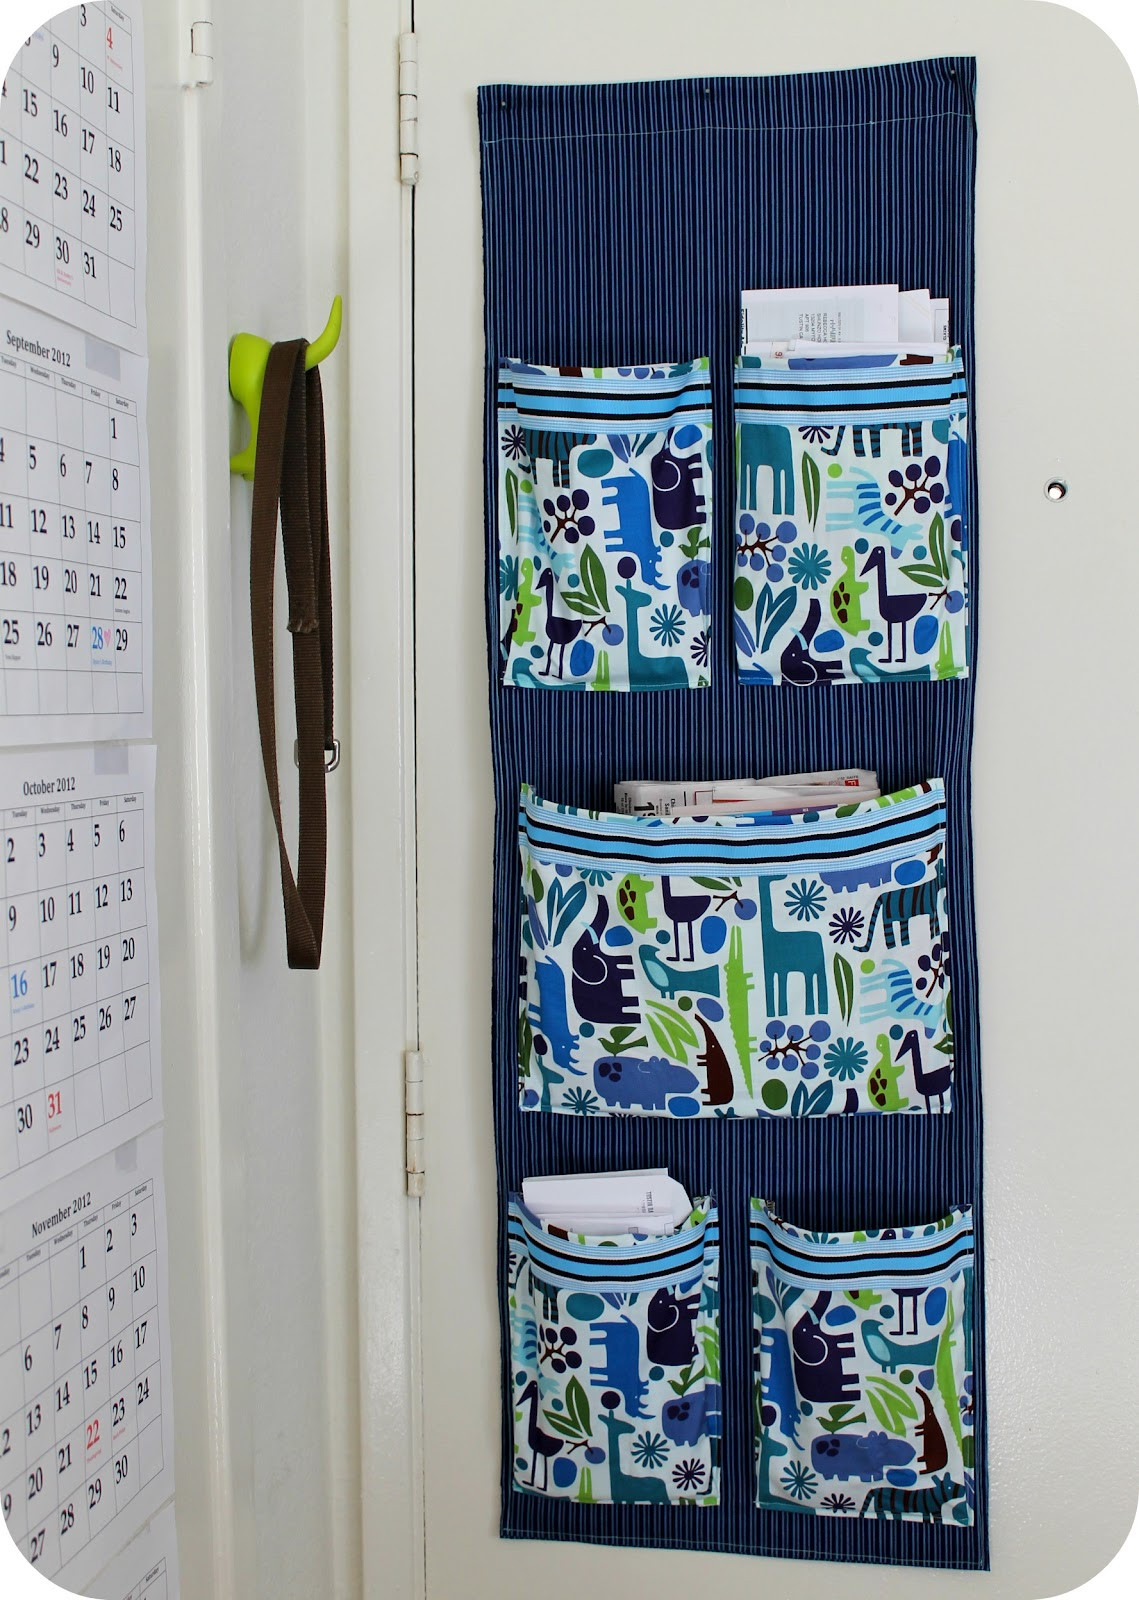 Best ideas about DIY Wall Mail Organizer . Save or Pin DiY Project Sew a Fabric Mail Organizer for the Wall Now.